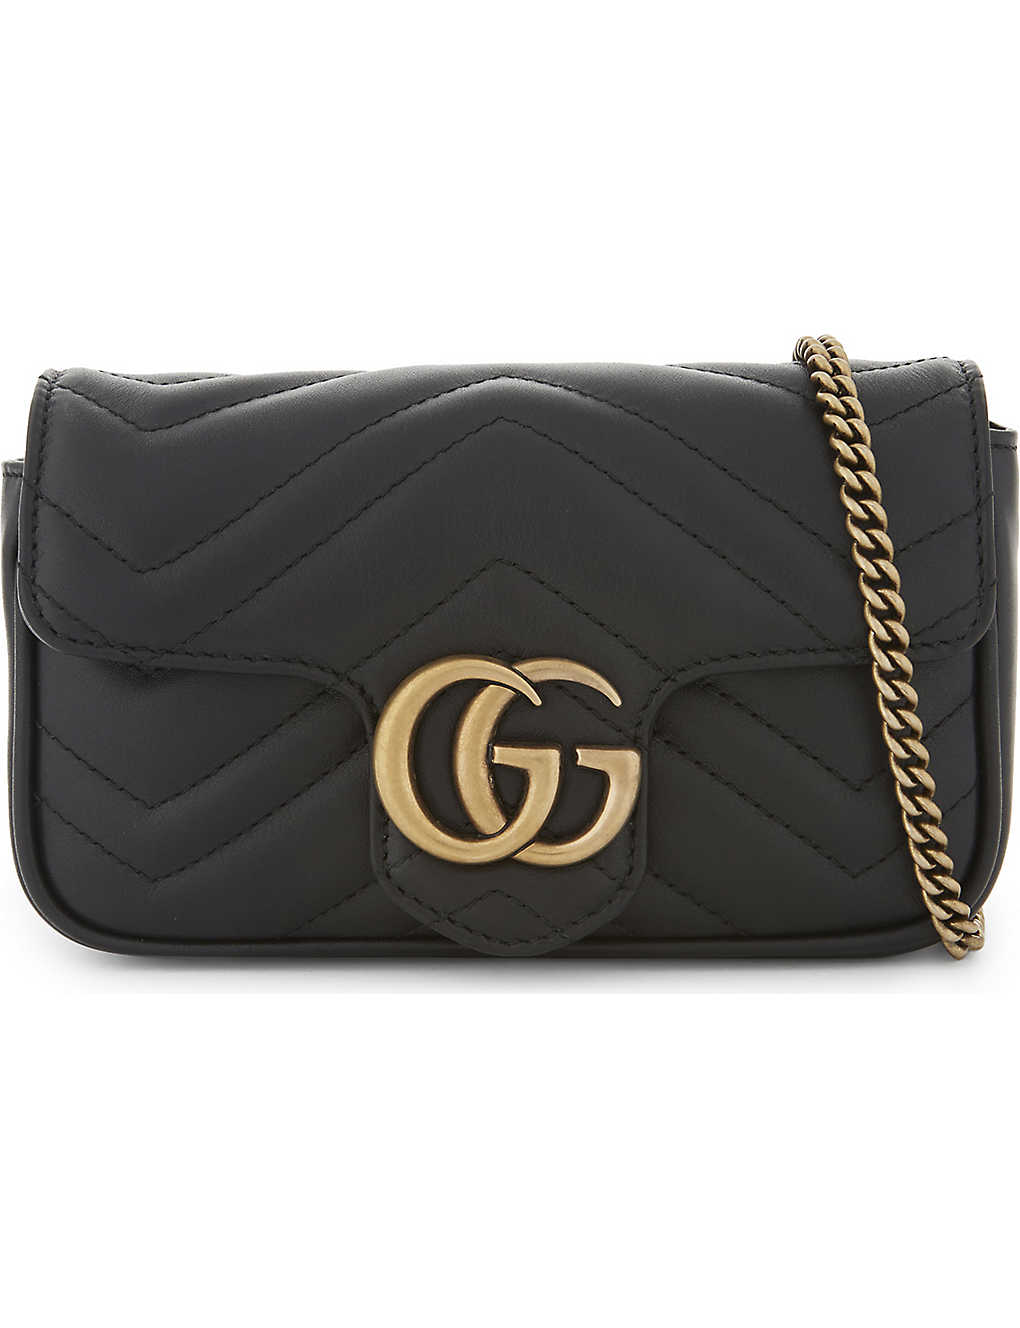 e6e97f0958b2a6 GUCCI - Marmont Super Mini leather shoulder bag | Selfridges.com